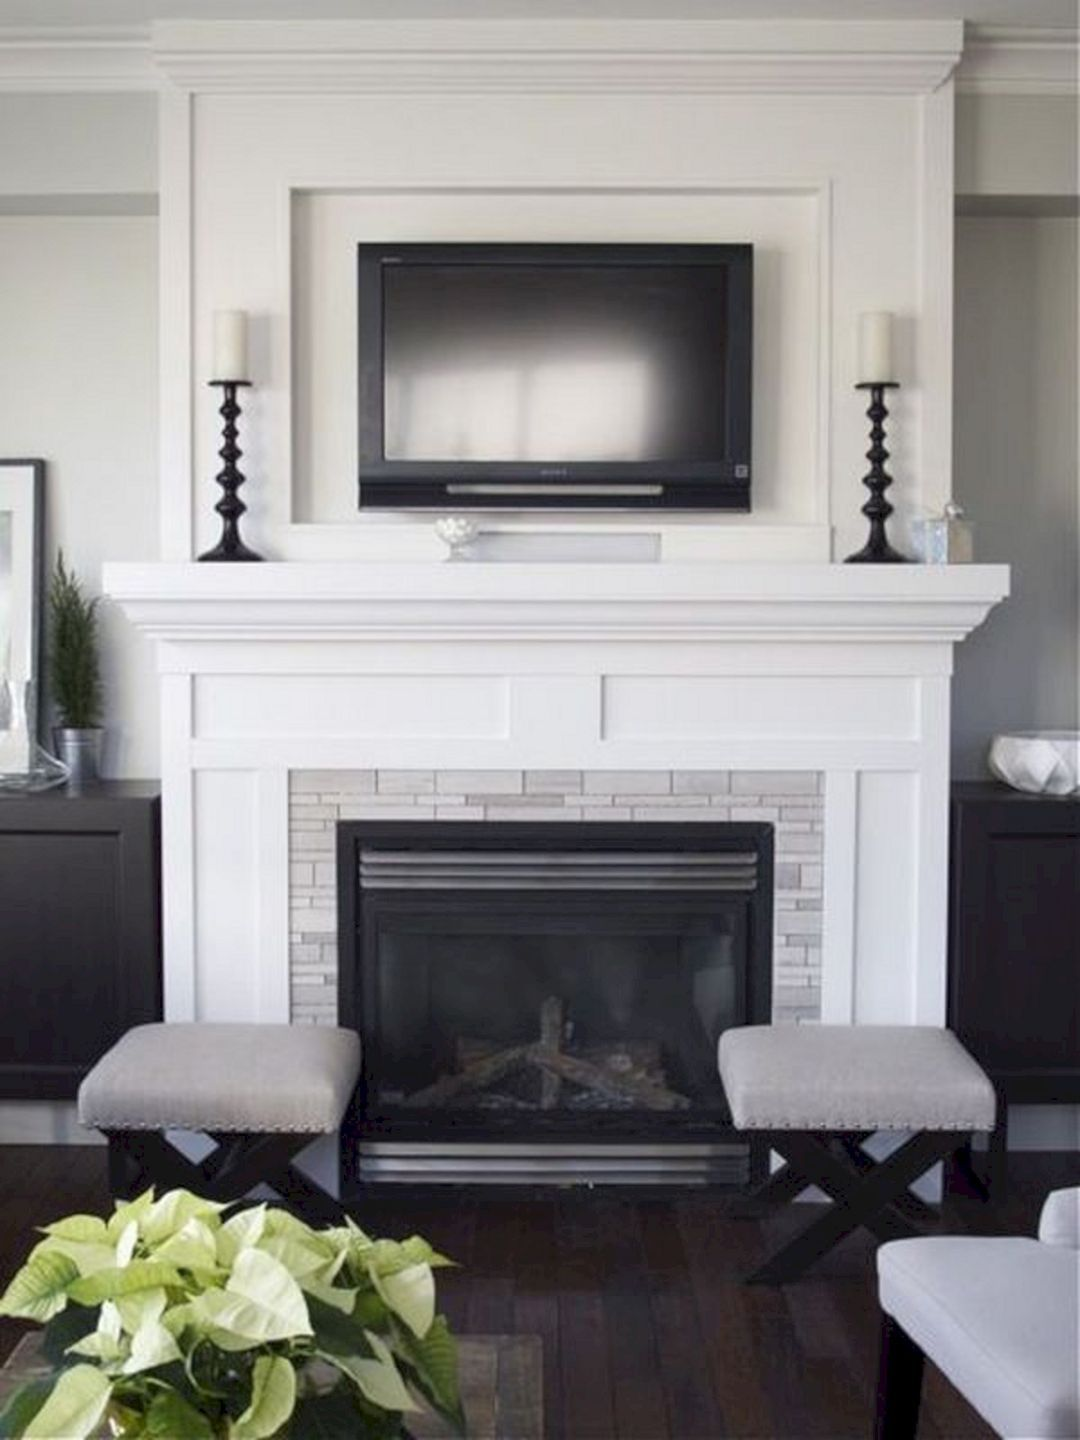 50+ Beautiful Living Room Fireplace With Wood Ideas | Living rooms ...